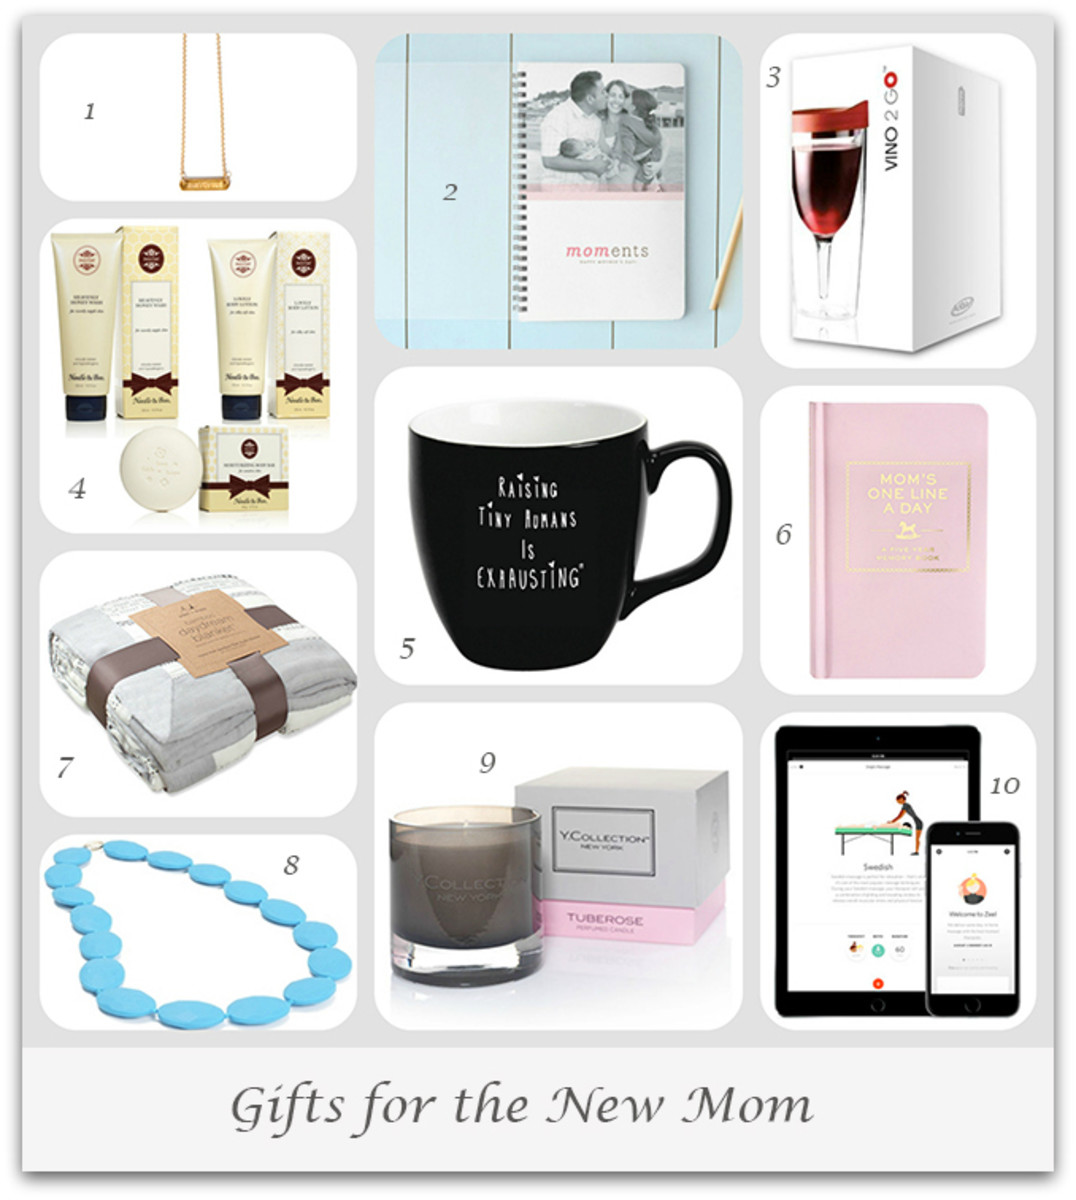 gifts for the new mom_final